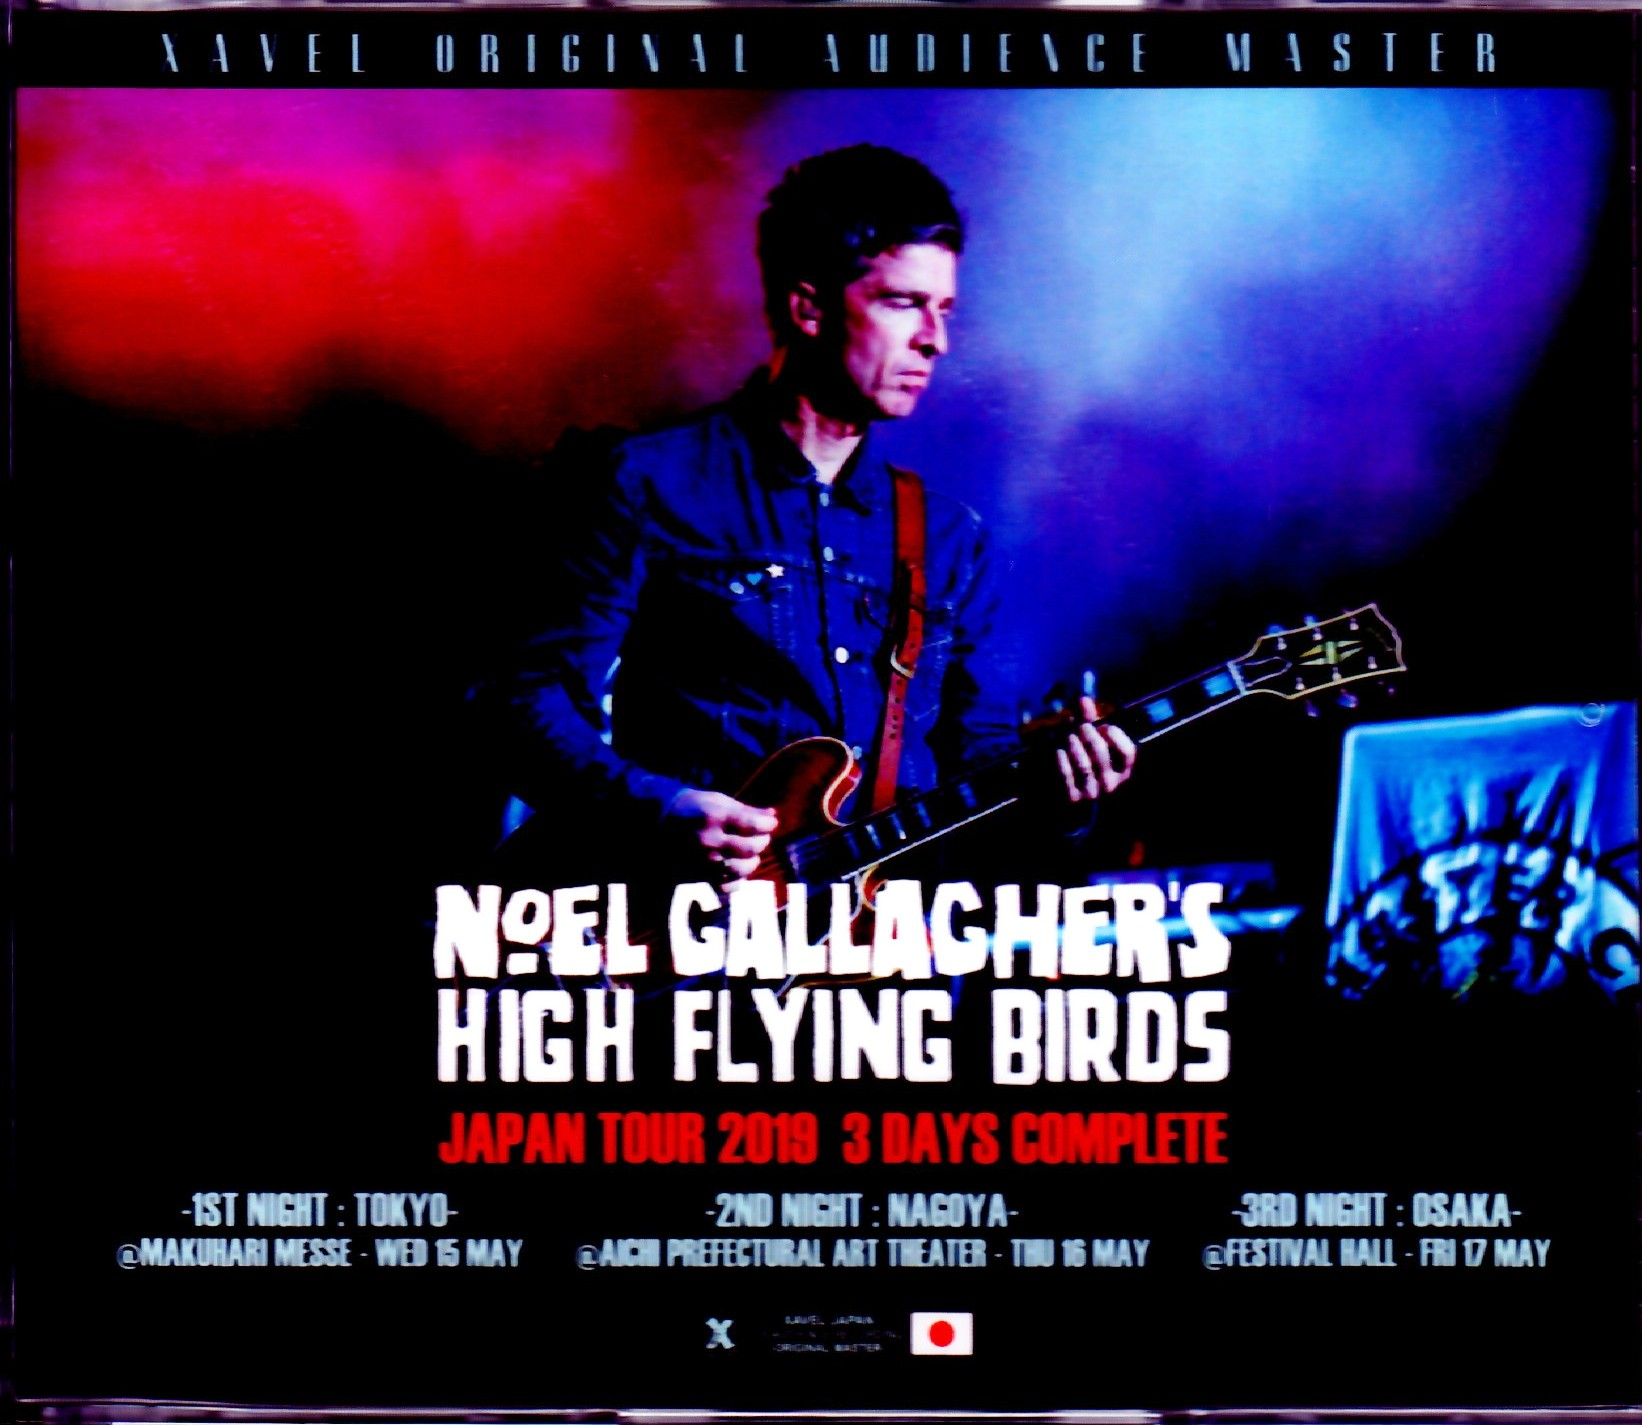 Noel Gallagher's High Flying Birds ノエル・ギャラガー/Japan Tour 2019 3 Days Complete